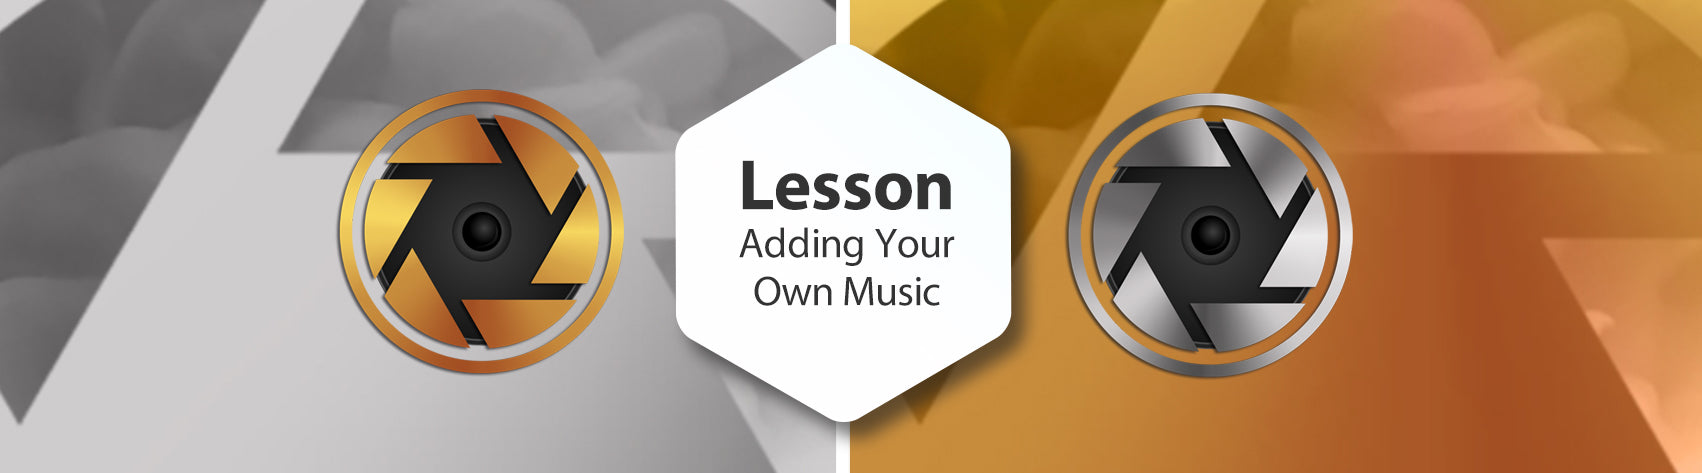 Lesson - Adding Your Own Music